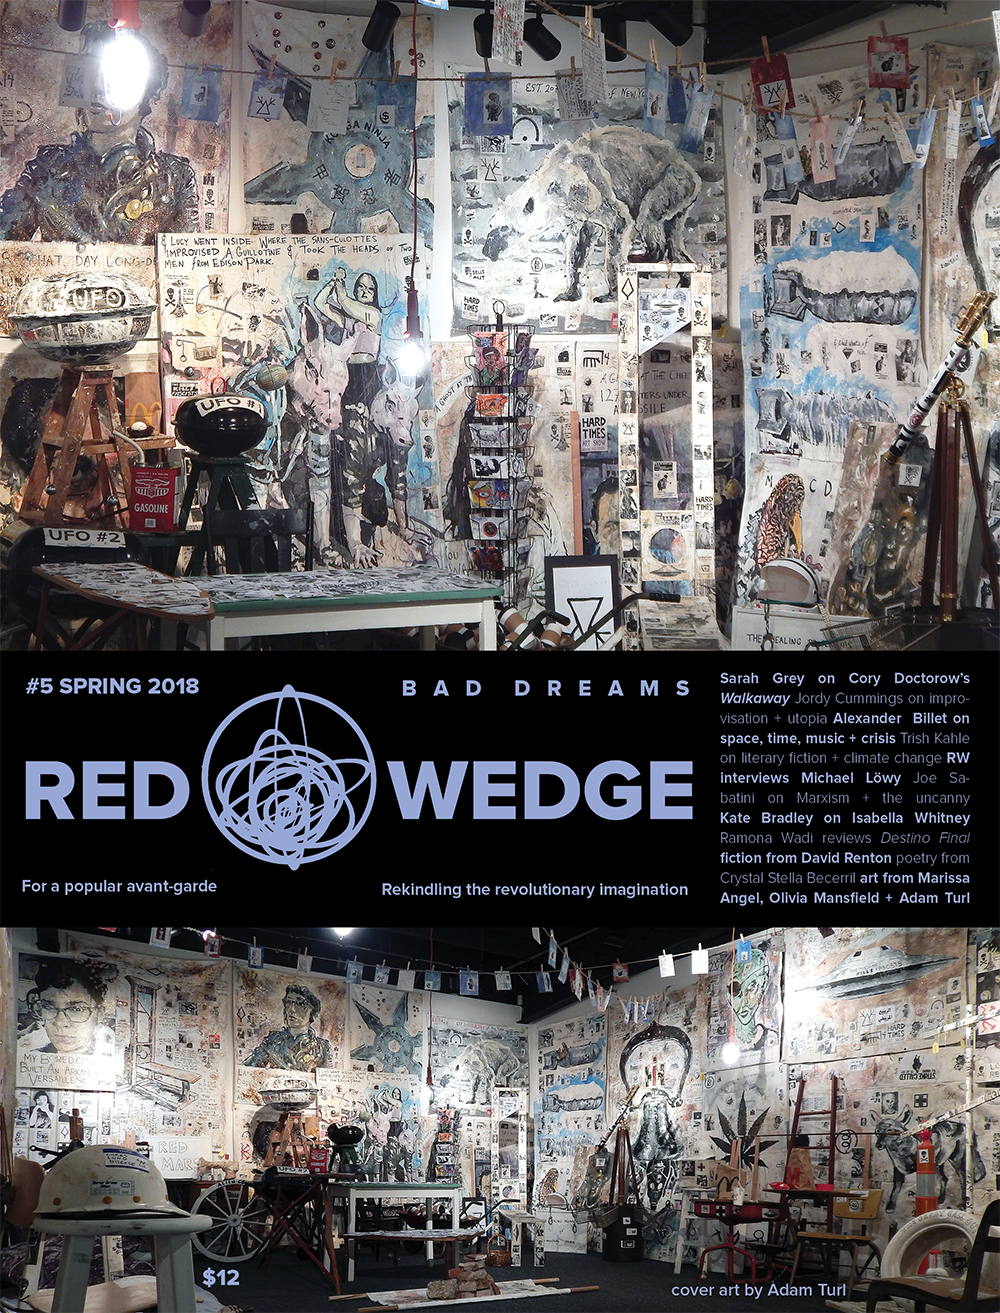 The Barista Who Could See the Future  on the cover of  Red Wedge #5: Bad Dreams.  (Spring 2018). (Adam Turl)